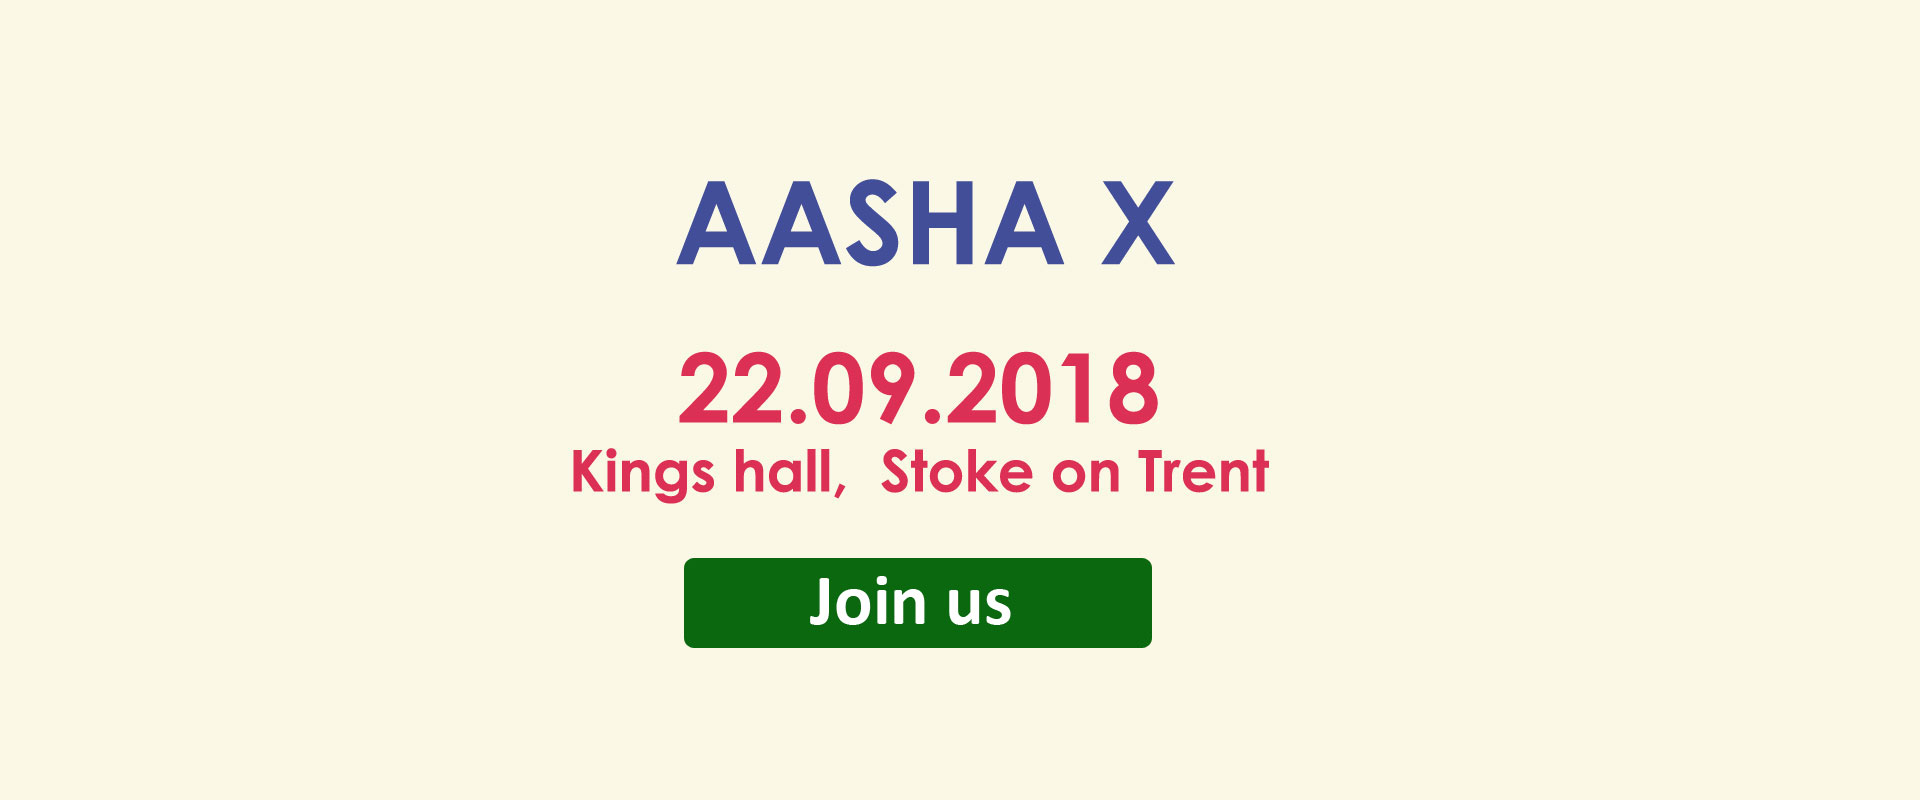 Aasha X 22.09.2018 Kings hall, Stoke on Trent, Coming soon